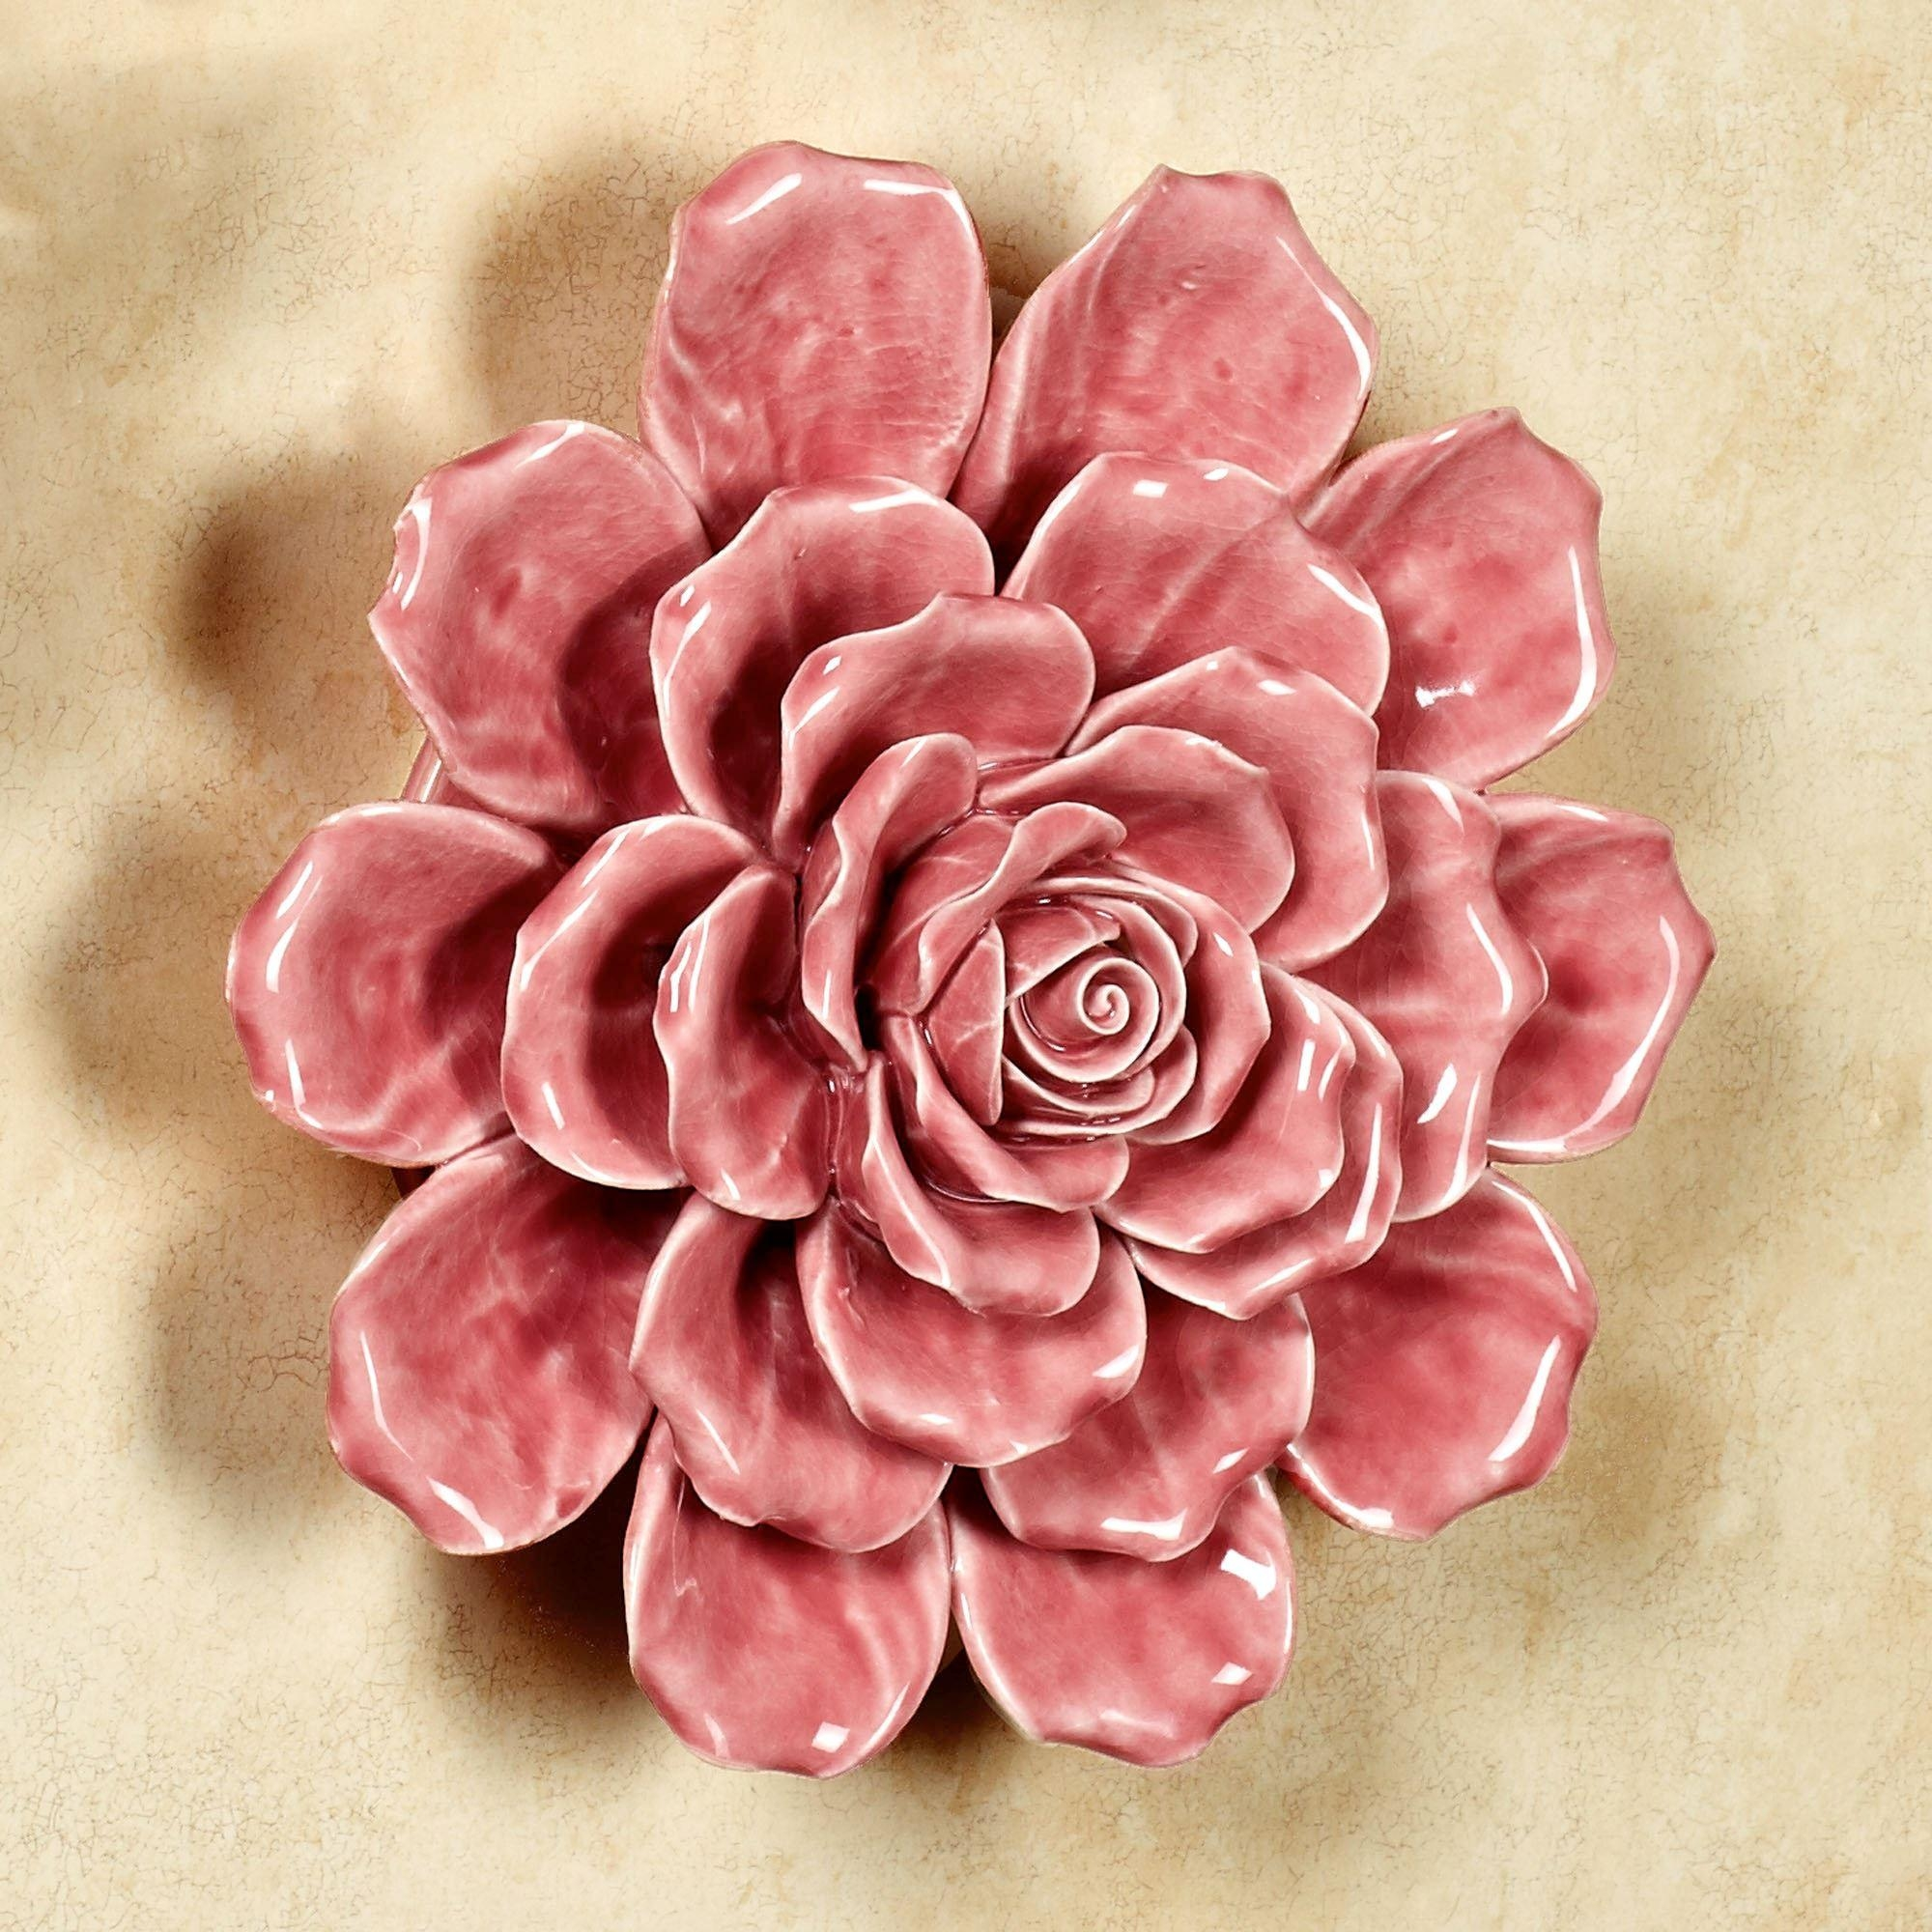 Isabella Ceramic Flower Blossom Wall Art Intended For Pink Flower Wall Art (Image 10 of 20)